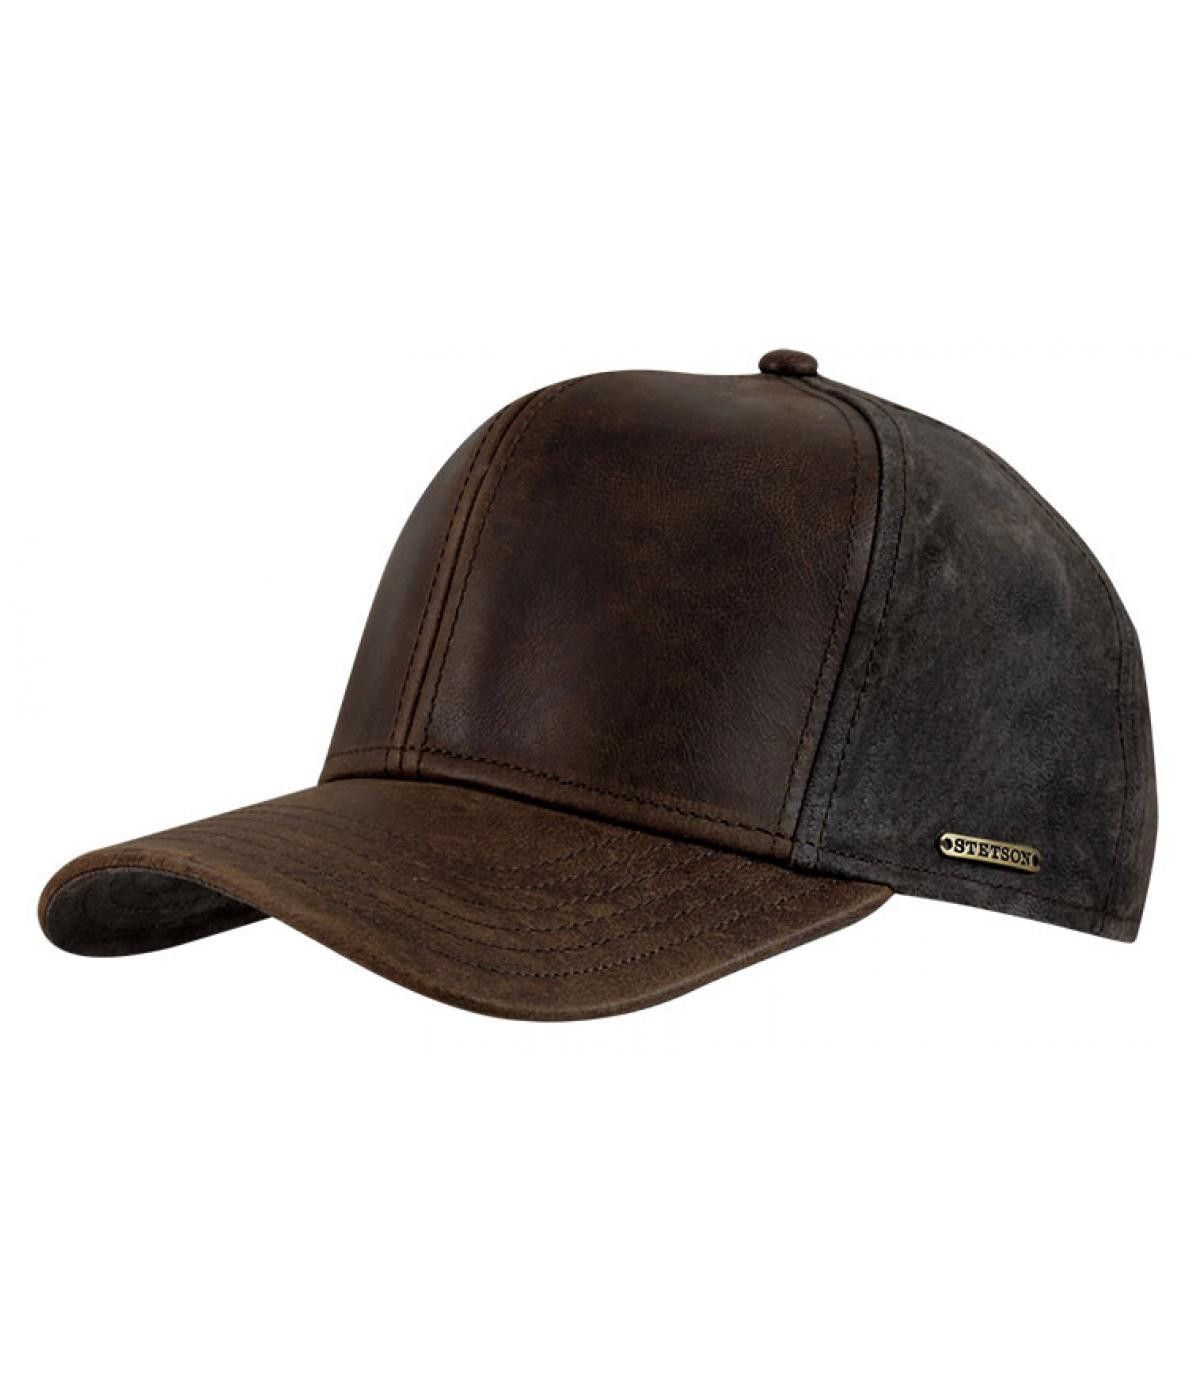 Leather campbell cap